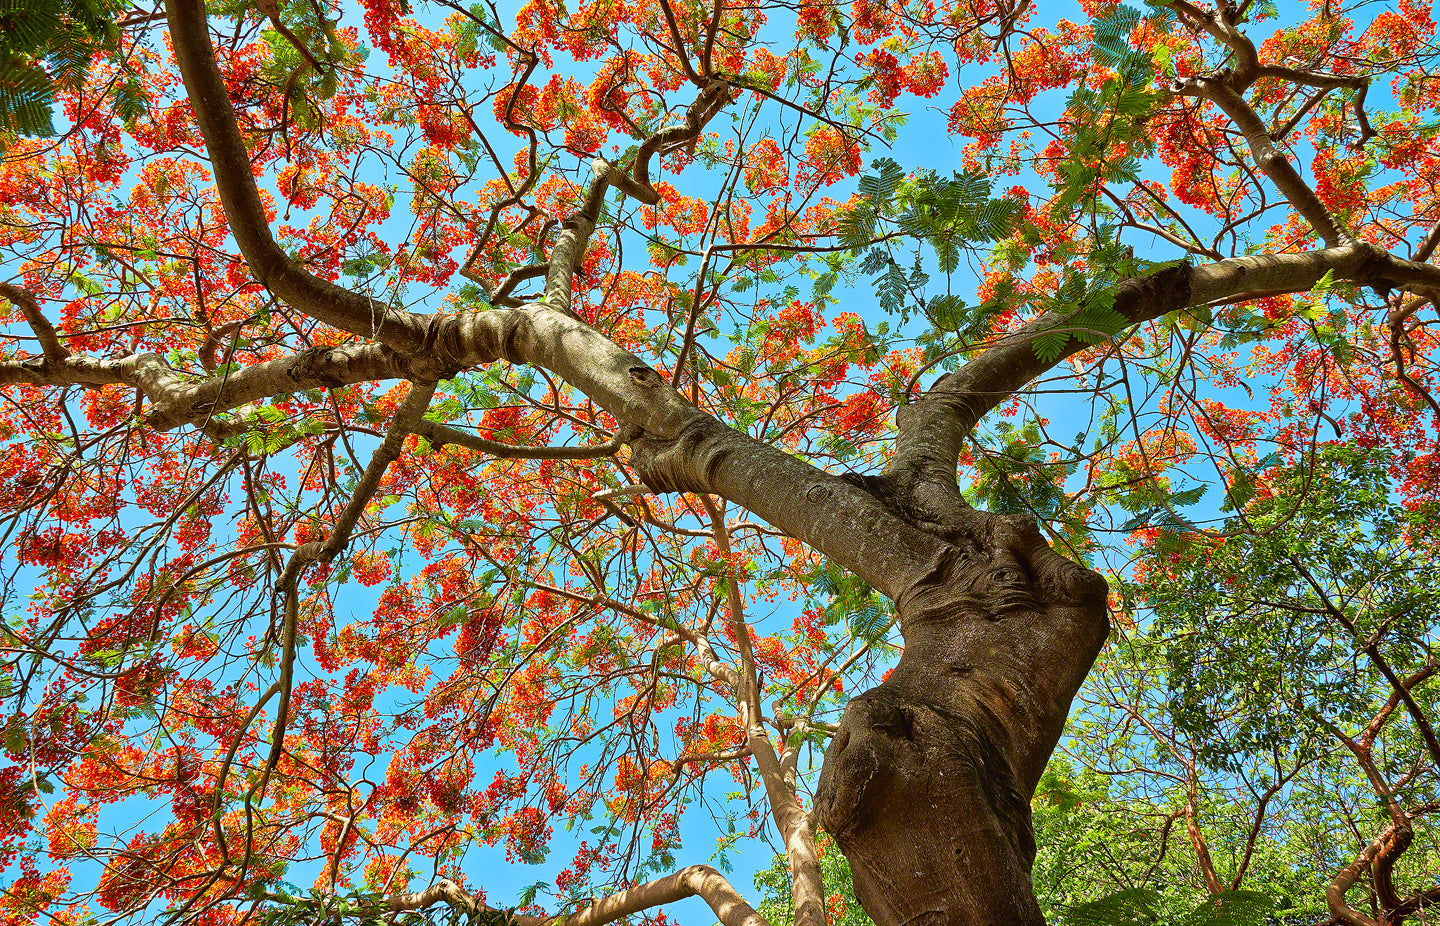 A photo of a Royal Poinciana Tree in full bloom